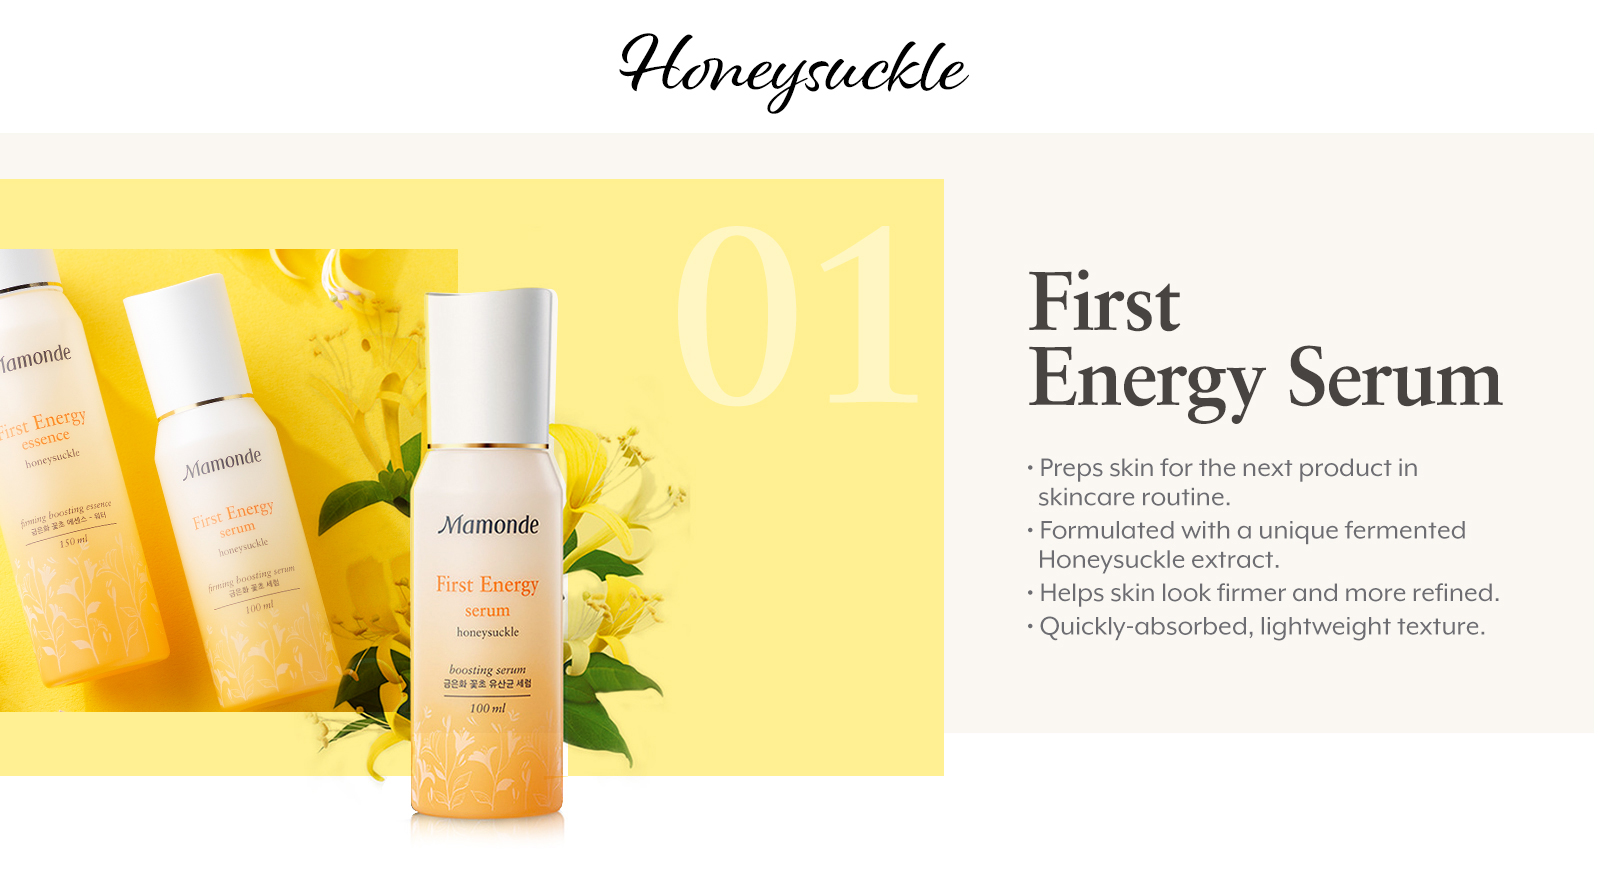 Mamonde Flagship Honeysuckle